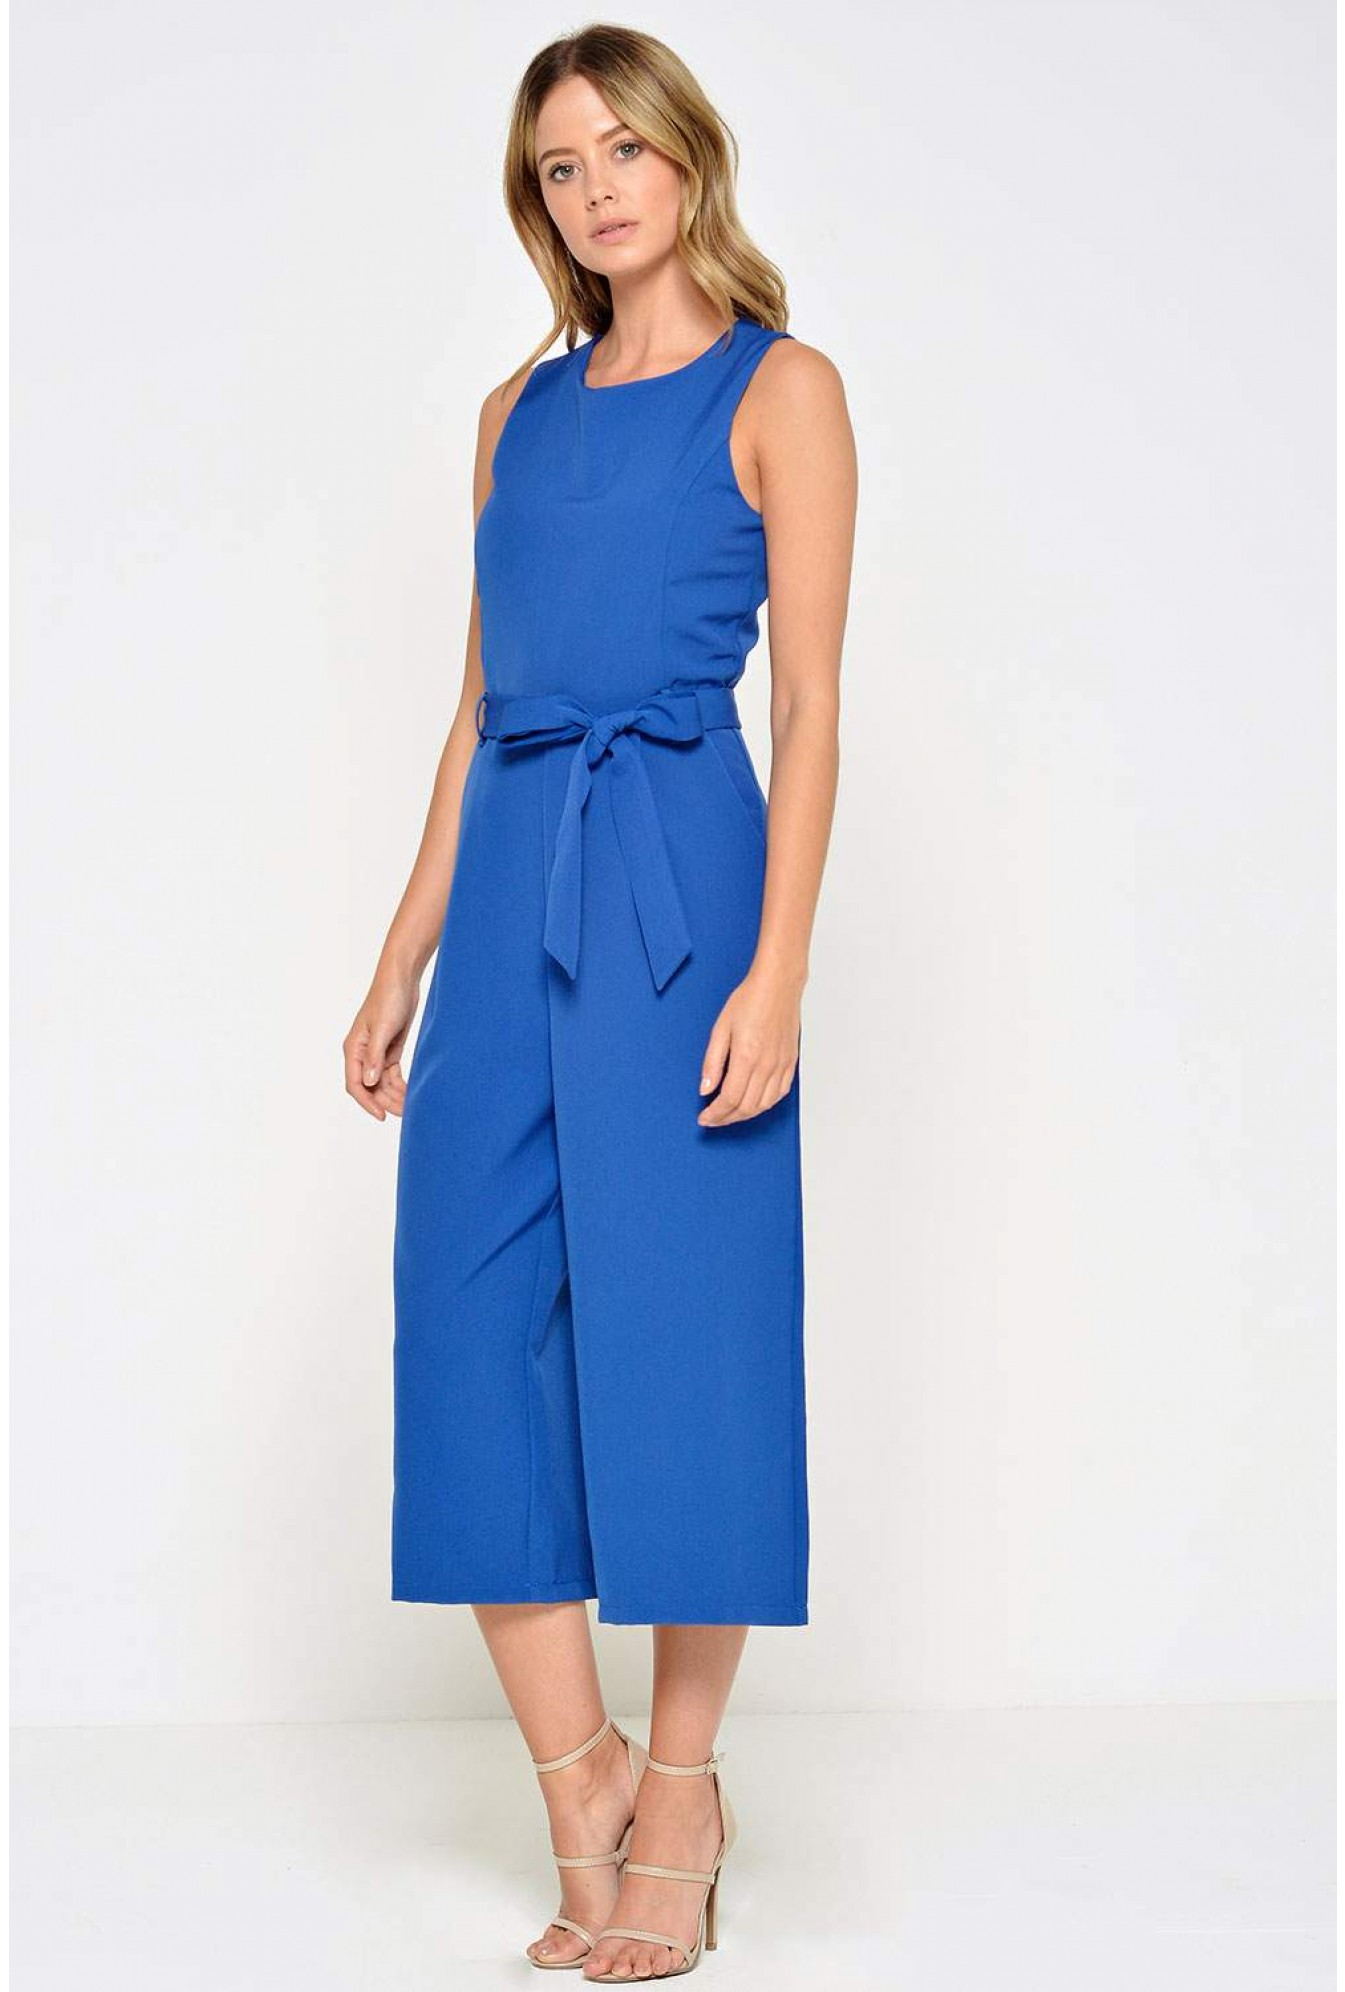 0ec98b6518c More Views. Layla Longline Culotte Jumpsuit in Royal Blue. Marc Angelo